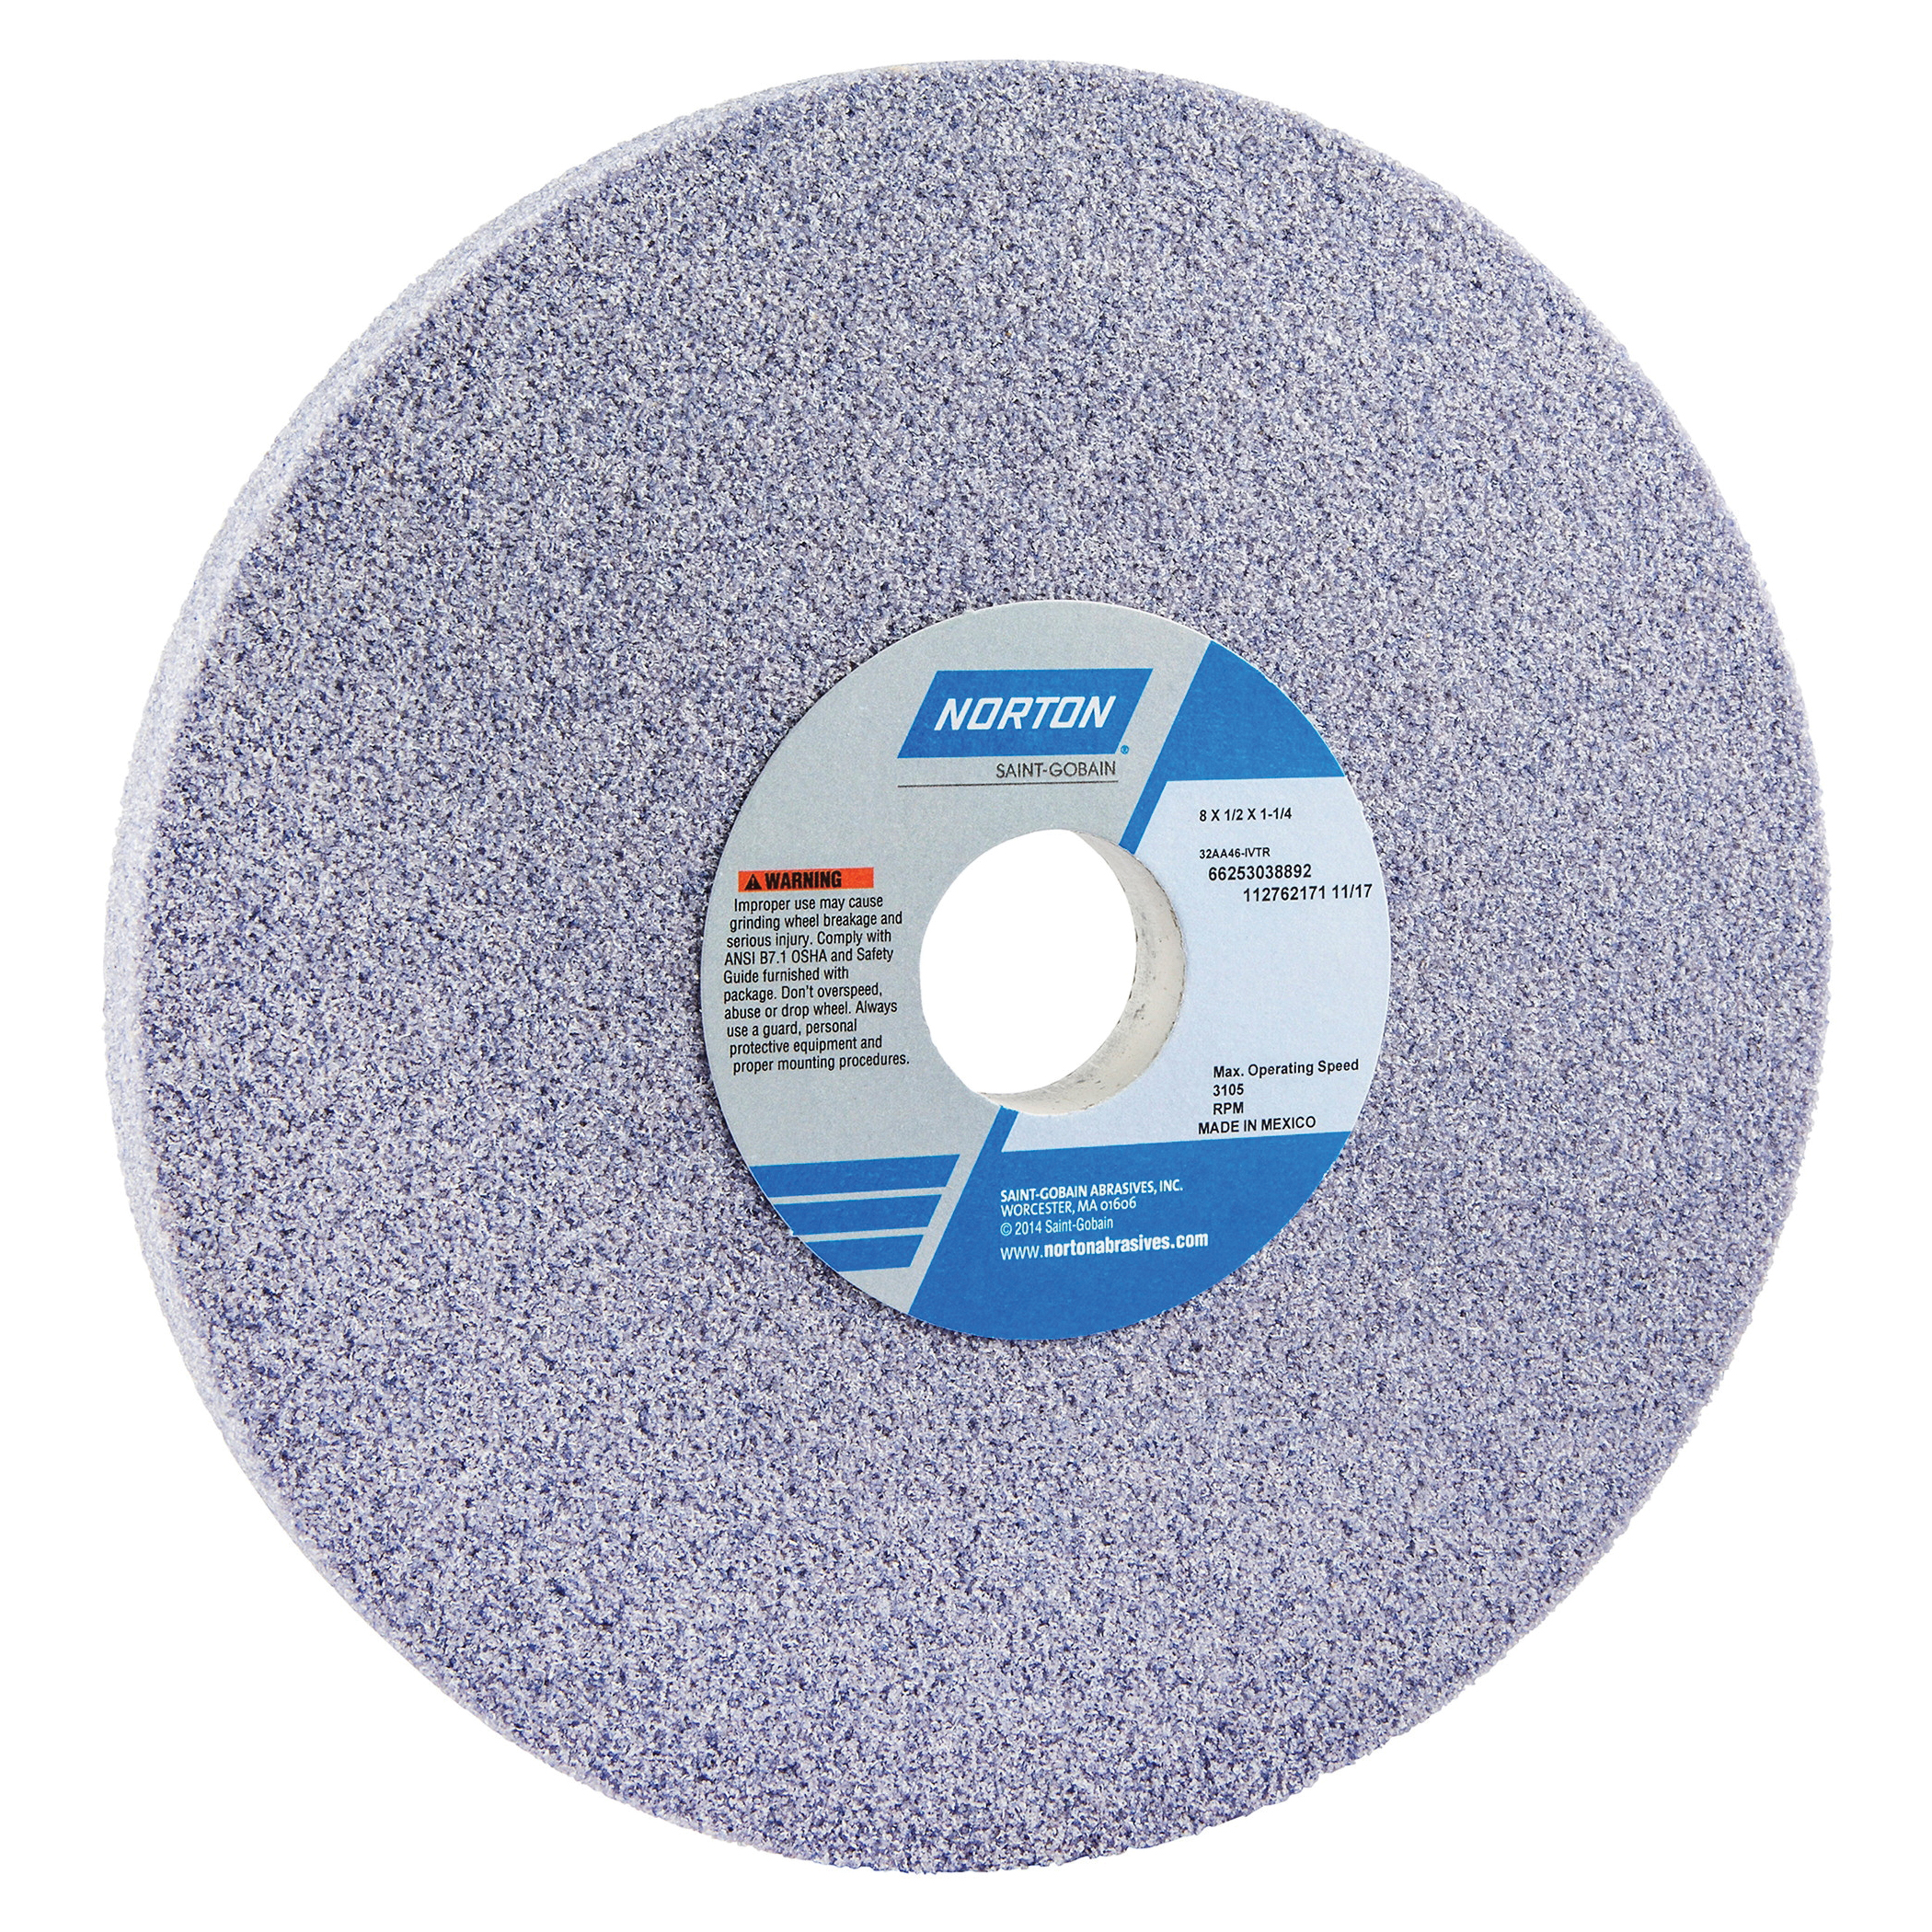 Norton® 66253038892 32AA Straight Toolroom Wheel, 8 in Dia x 1/2 in THK, 1-1/4 in Center Hole, 46 Grit, Aluminum Oxide Abrasive